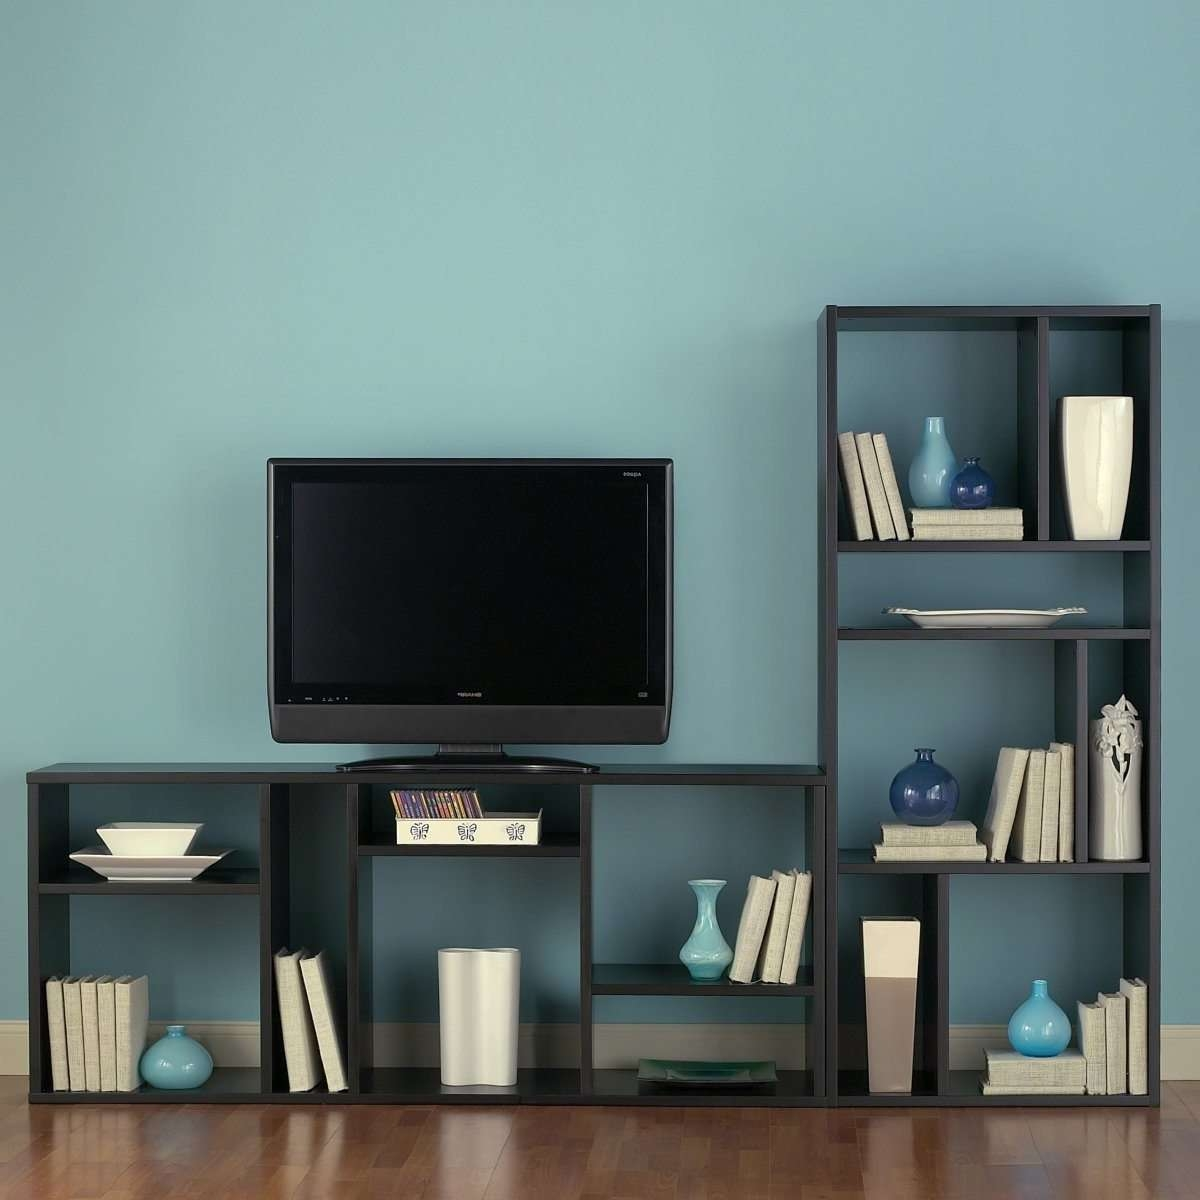 Great Tv Stand With Bookshelves 17 On Interior Designing Home Pertaining To Tv Stands And Bookshelf (View 6 of 15)